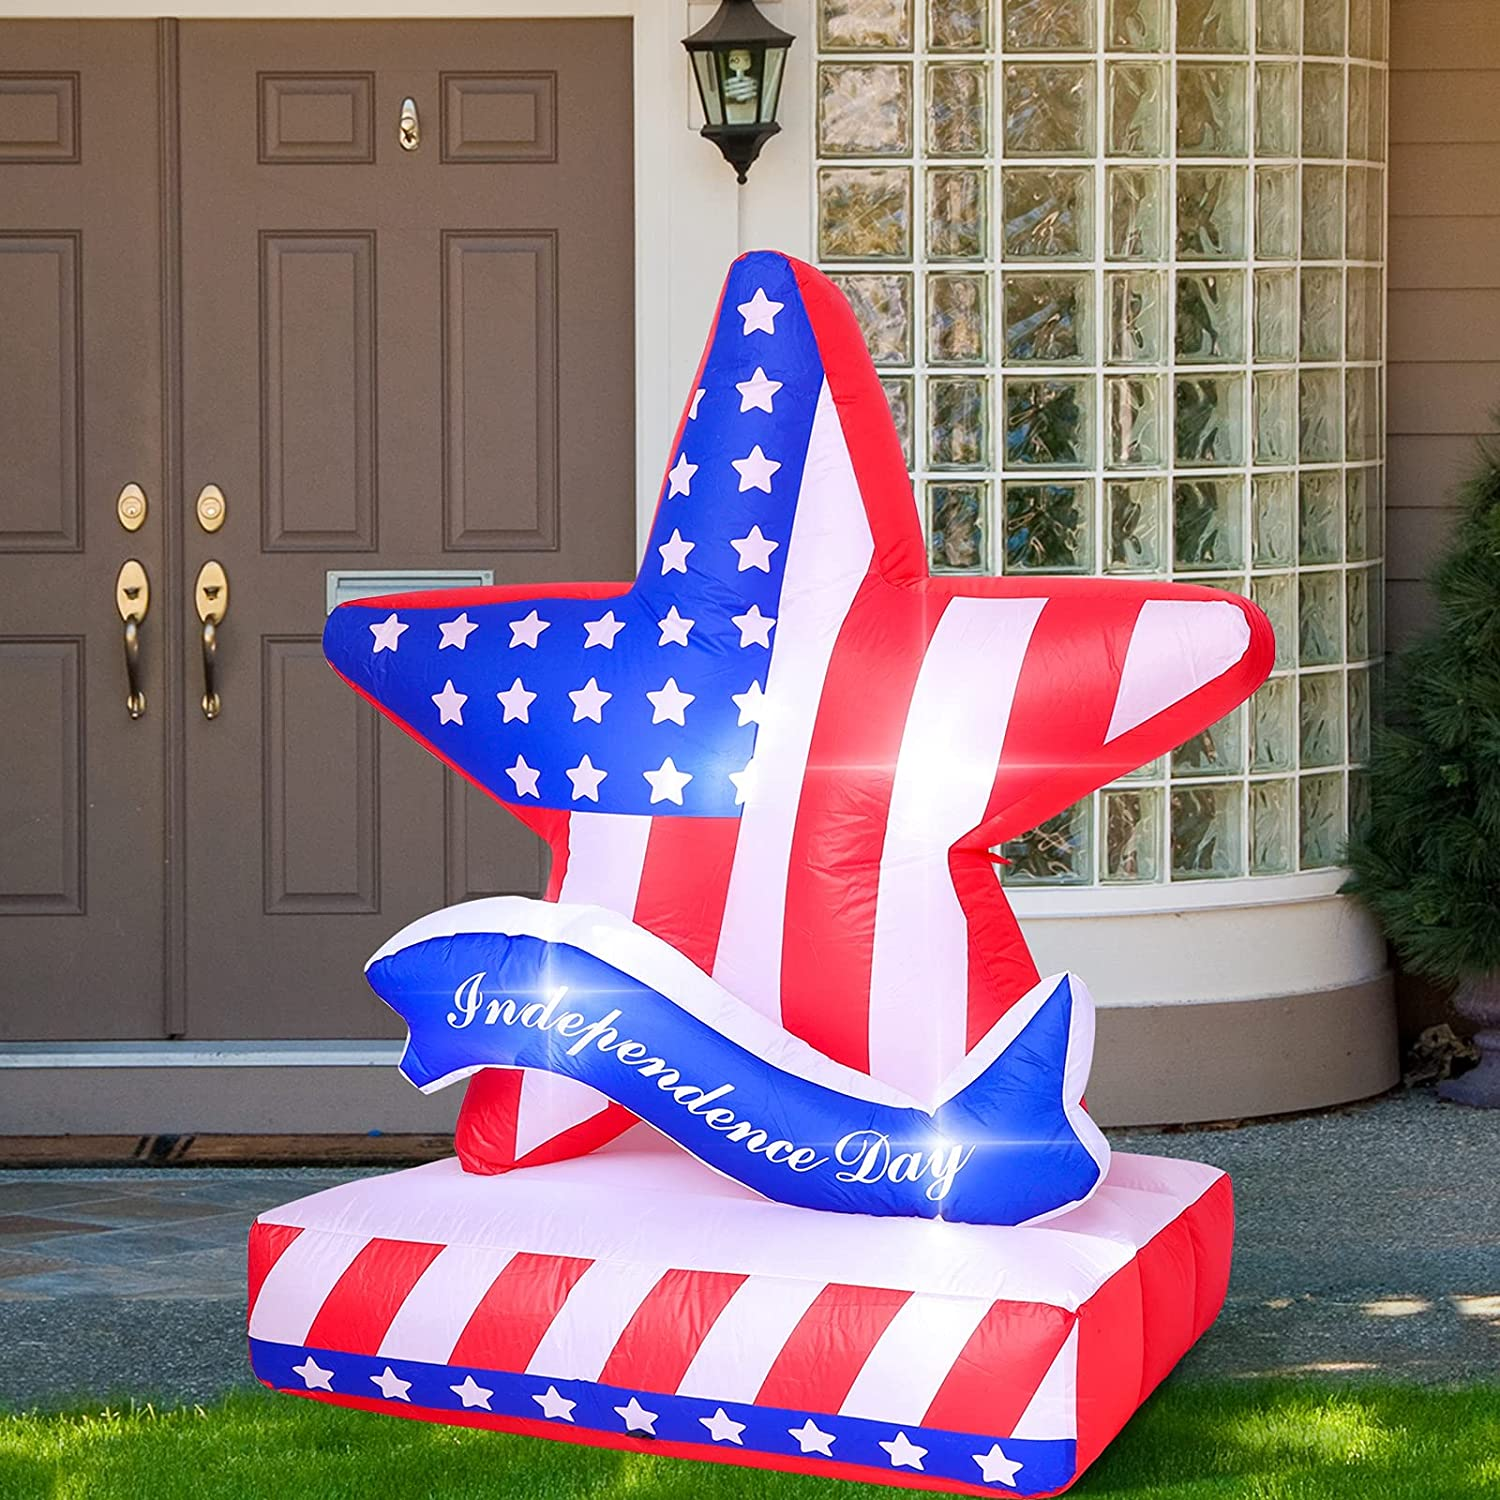 ELCOHO Patriotic Independence Popular brand in the world Day Inflatables Decorations Inflat Luxury